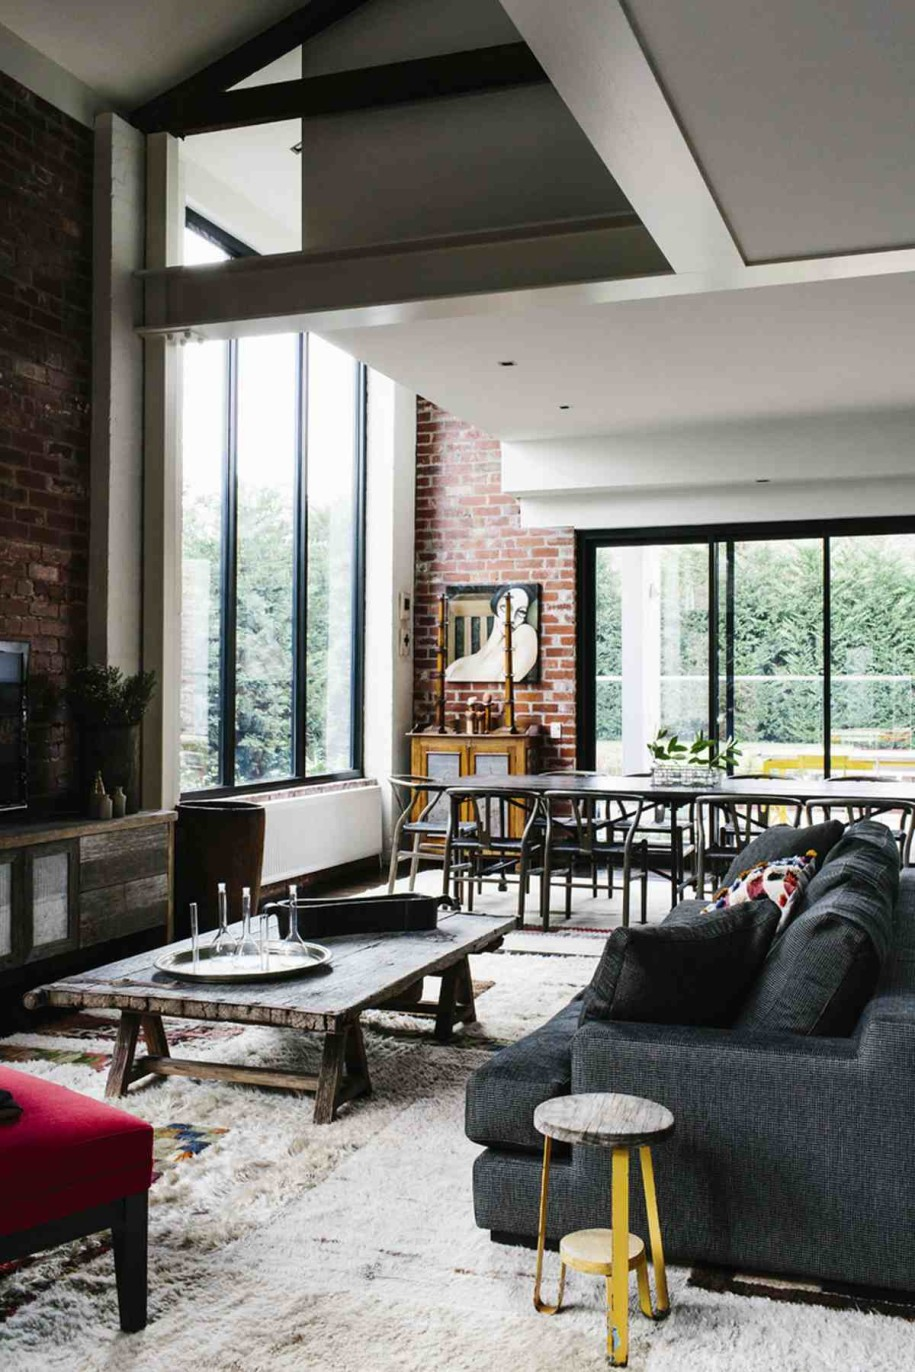 Interior Cozy Living Room In Industrial And Ethnic Loft